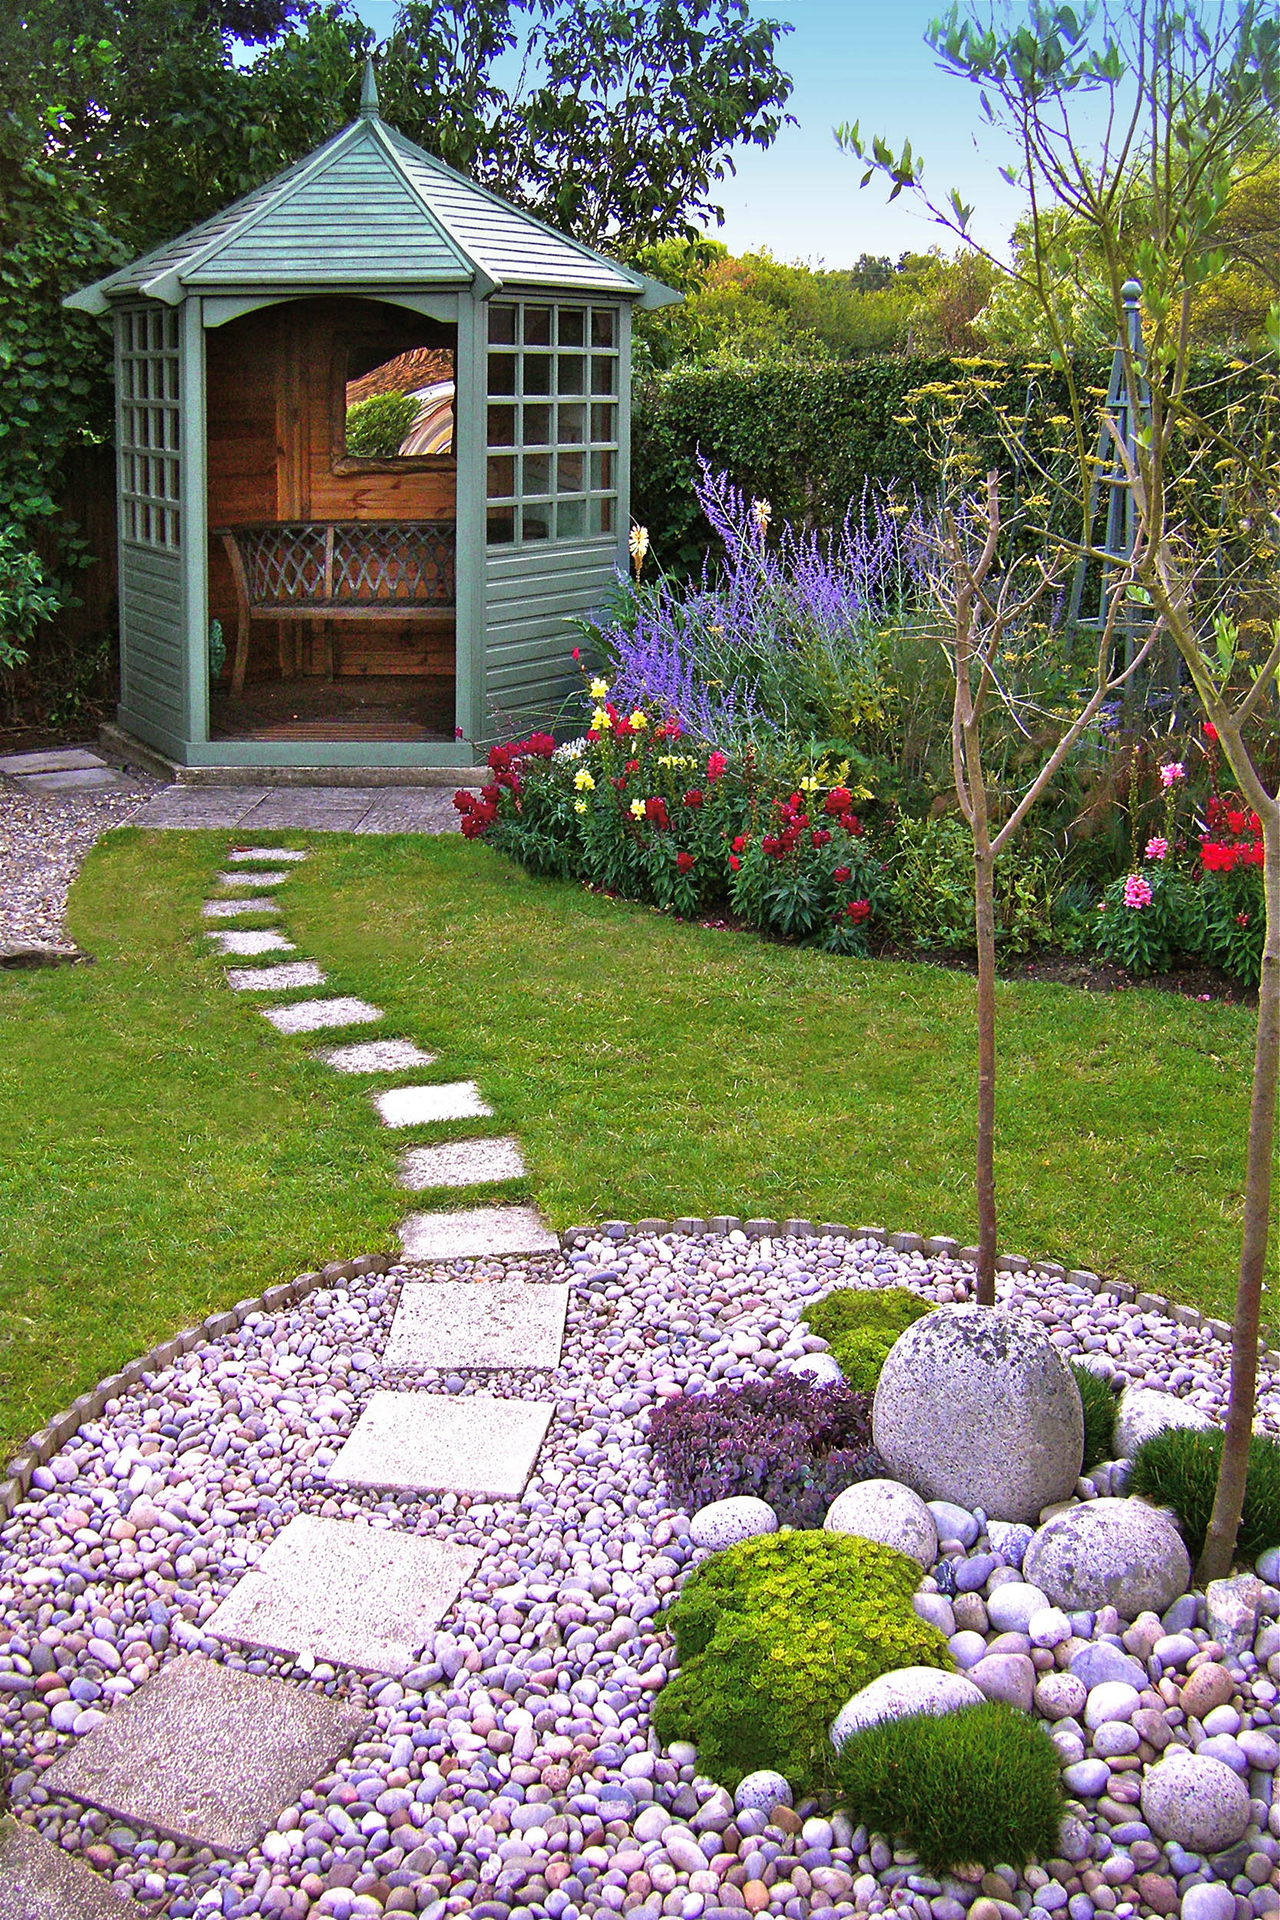 50 Best Backyard Landscaping Ideas And Designs In 2019 intended for 15 Genius Ideas How to Upgrade Backyard Garden Ideas